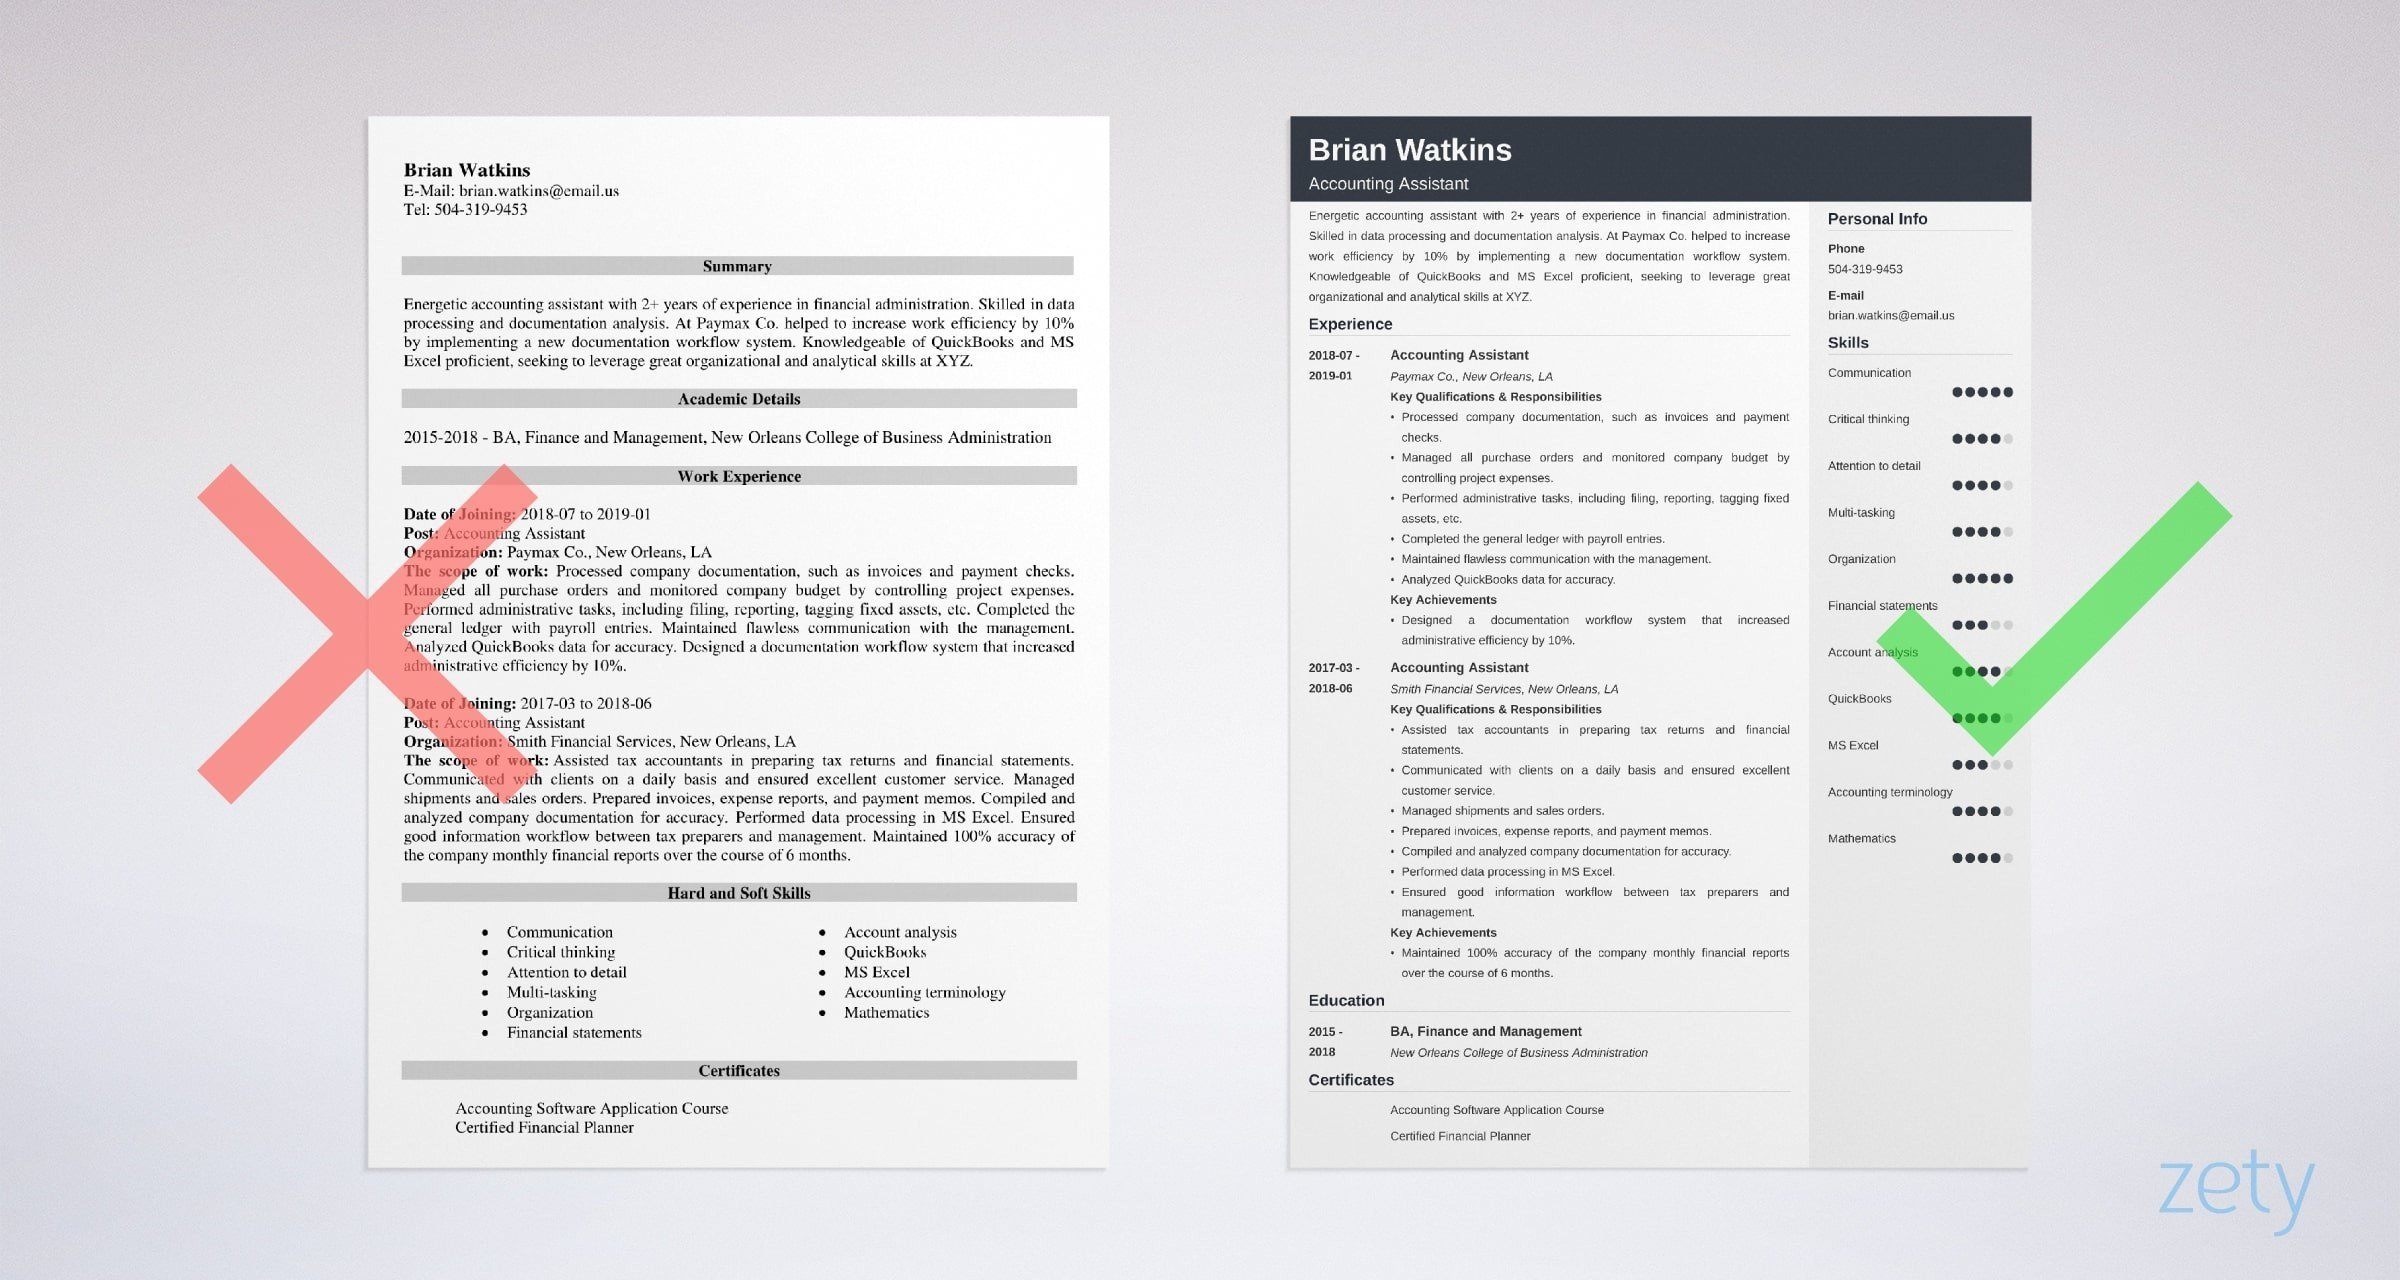 Accounting Assistant Resume: Sample & Writing Guide [20+ Tips]